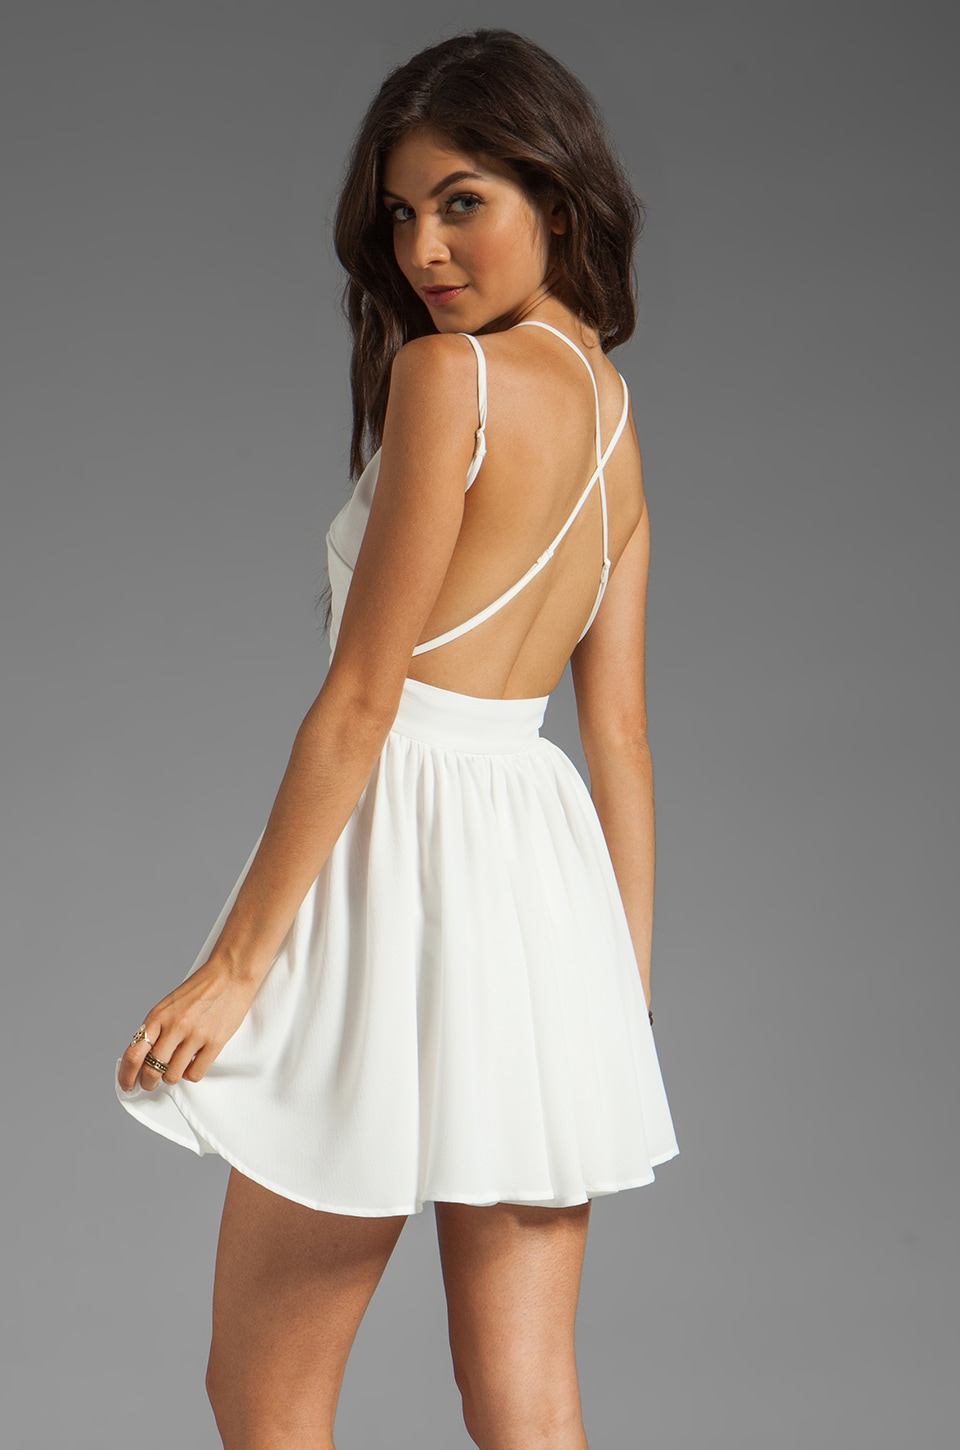 keepsake Wind in the Willows Dress in Ivory